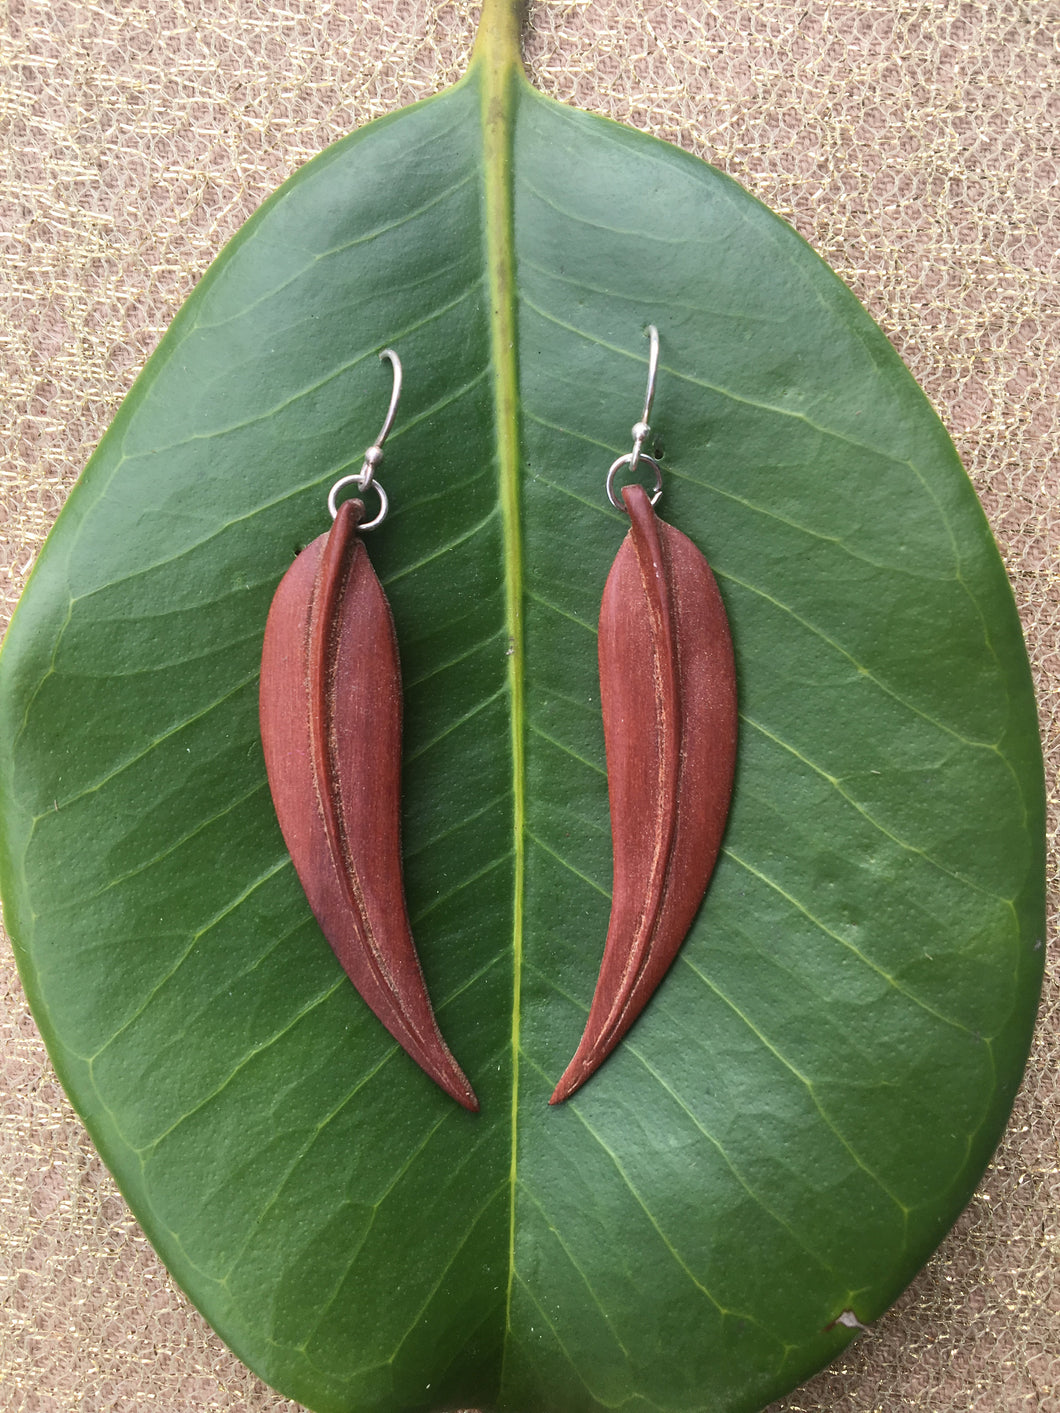 Smooth Gum Leaf Earrings - Suar wood - Mahogany Red/Brown Earrings